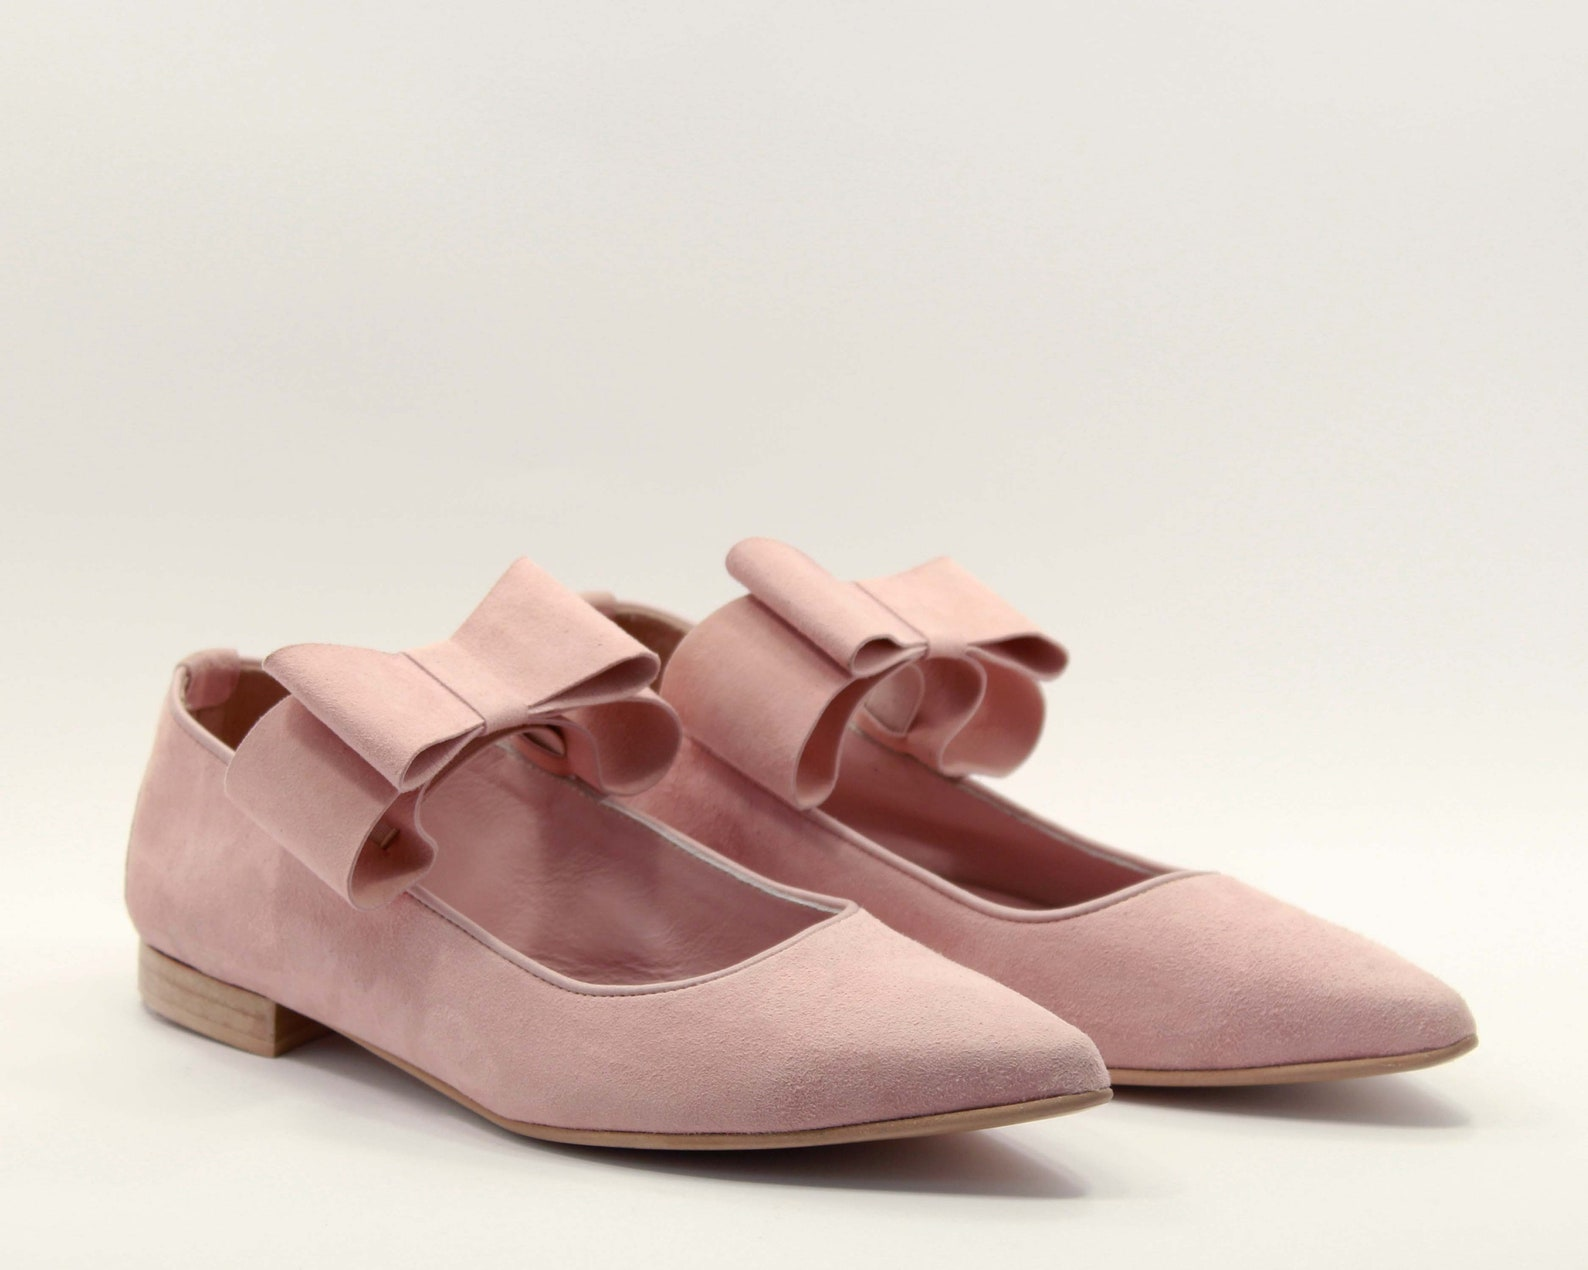 black women shoes flats black shoes bows ballerinas pink bows womens pink shoes nude ballet pink glitter flats handmade leather